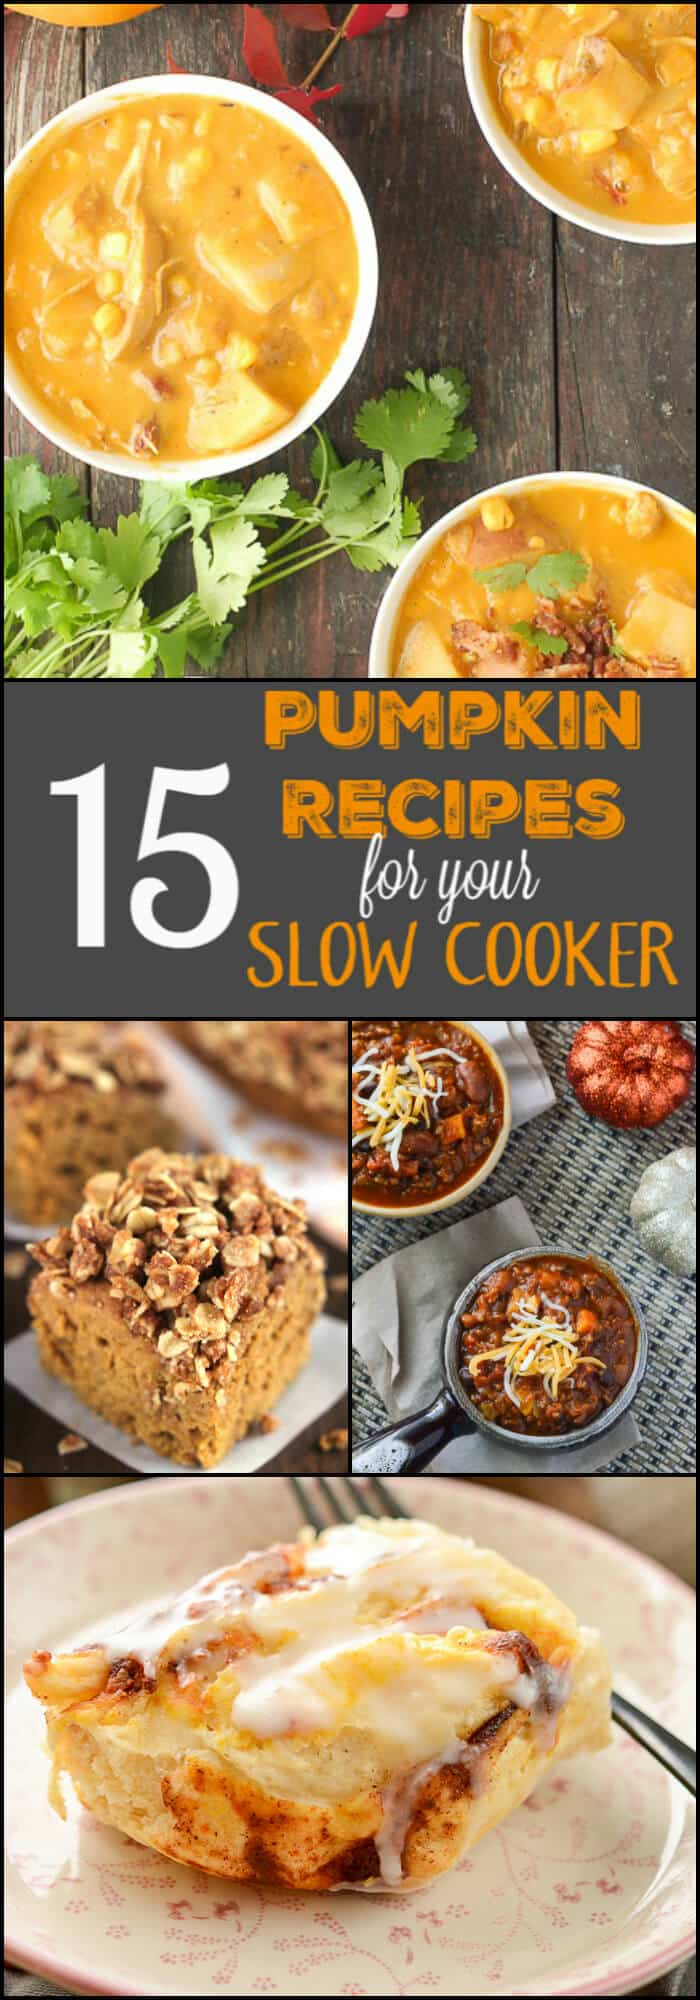 Everyone loves pumpkin recipes and dishes you can make in your slow cooker are even better. 15 Pumpkin Recipes for your Slow Cooker has you covered.